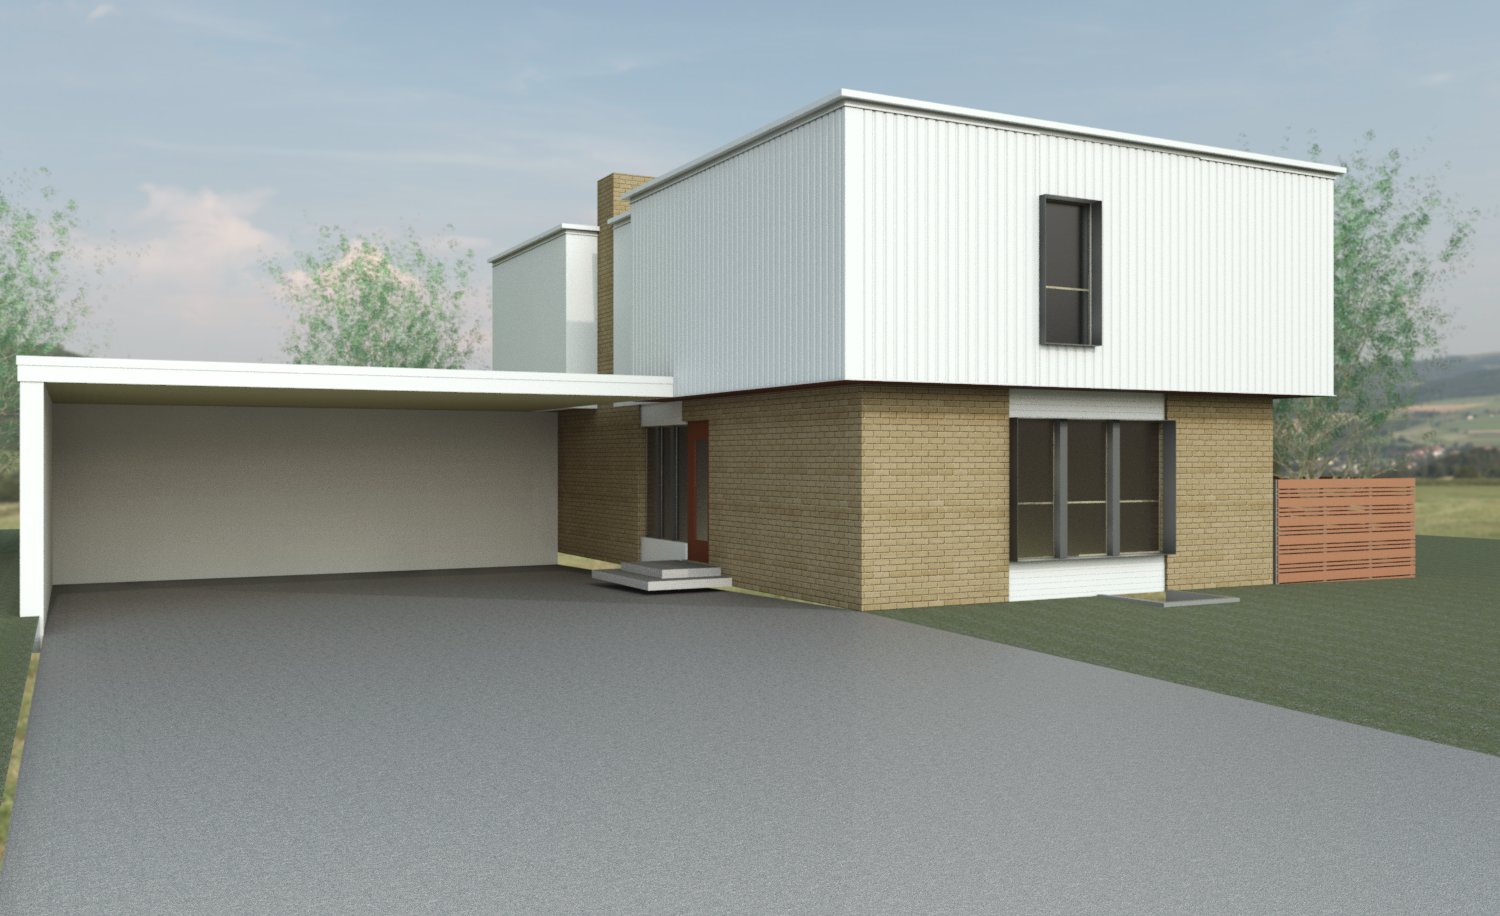 09 Martins_Residence_3D_View_-_front_from_street_-_dark_gray_boxes.png